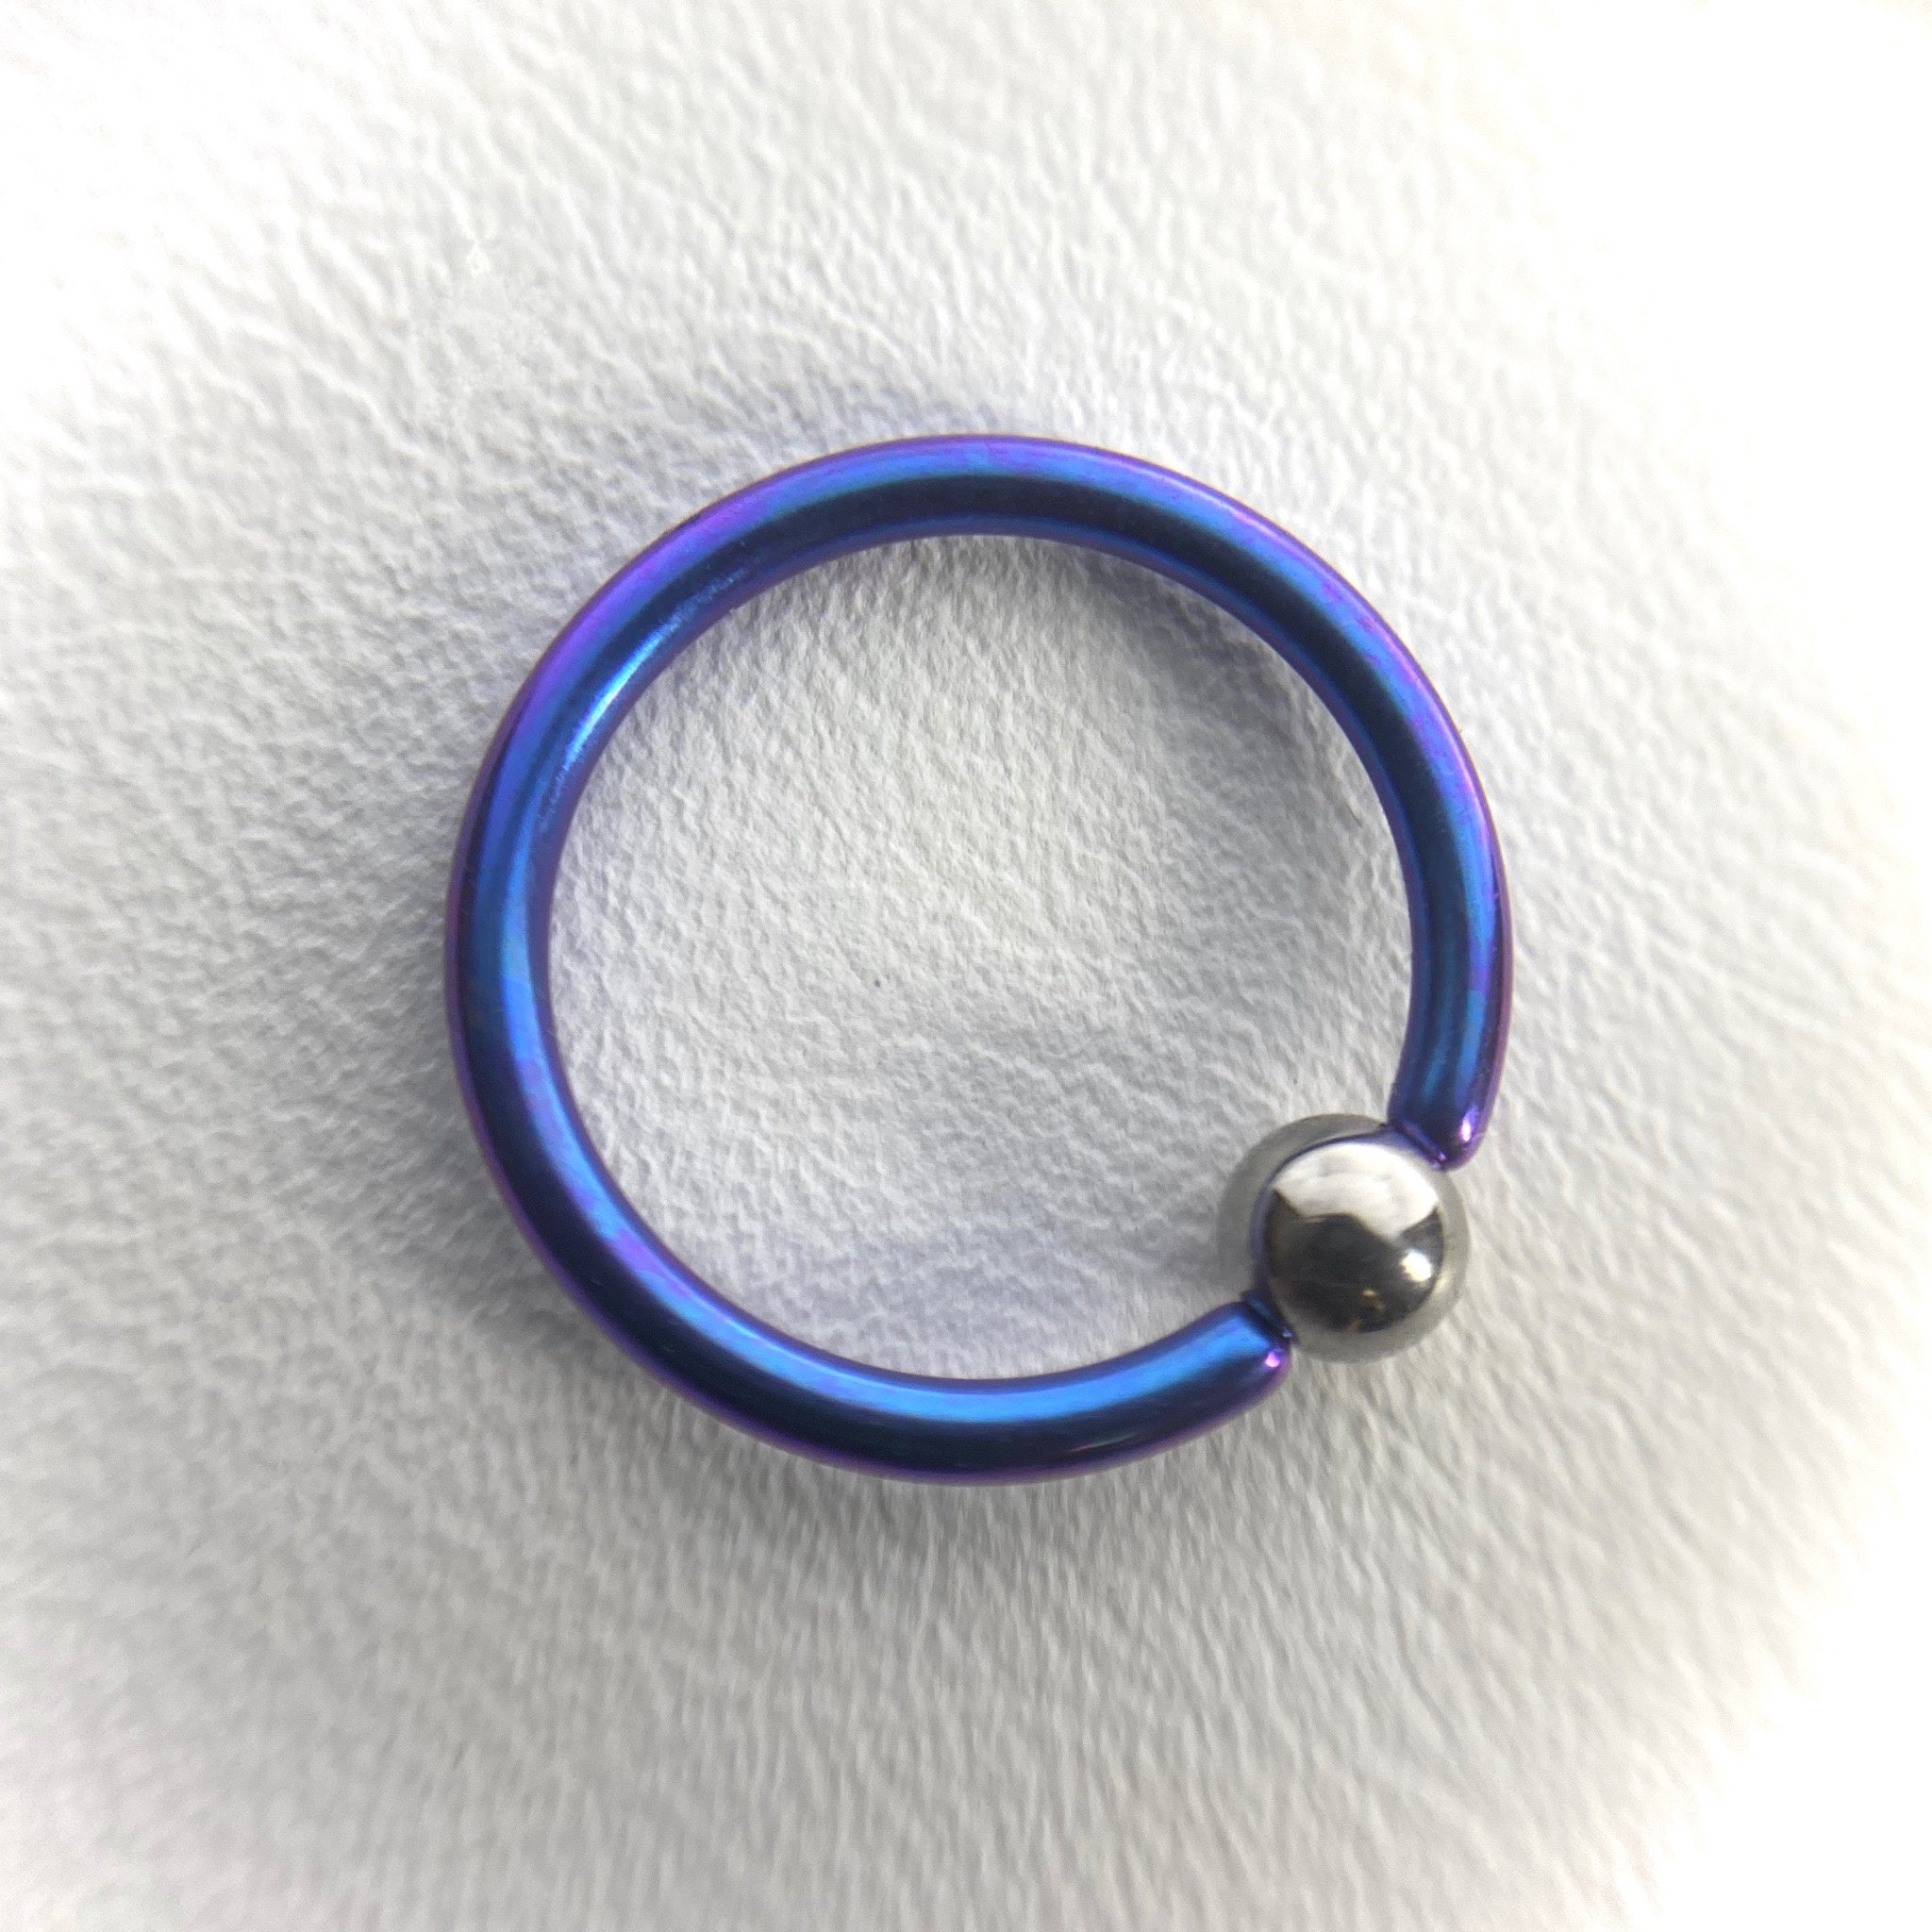 16g Titanium Captive Bead Ring w Plain Bead (CBR)